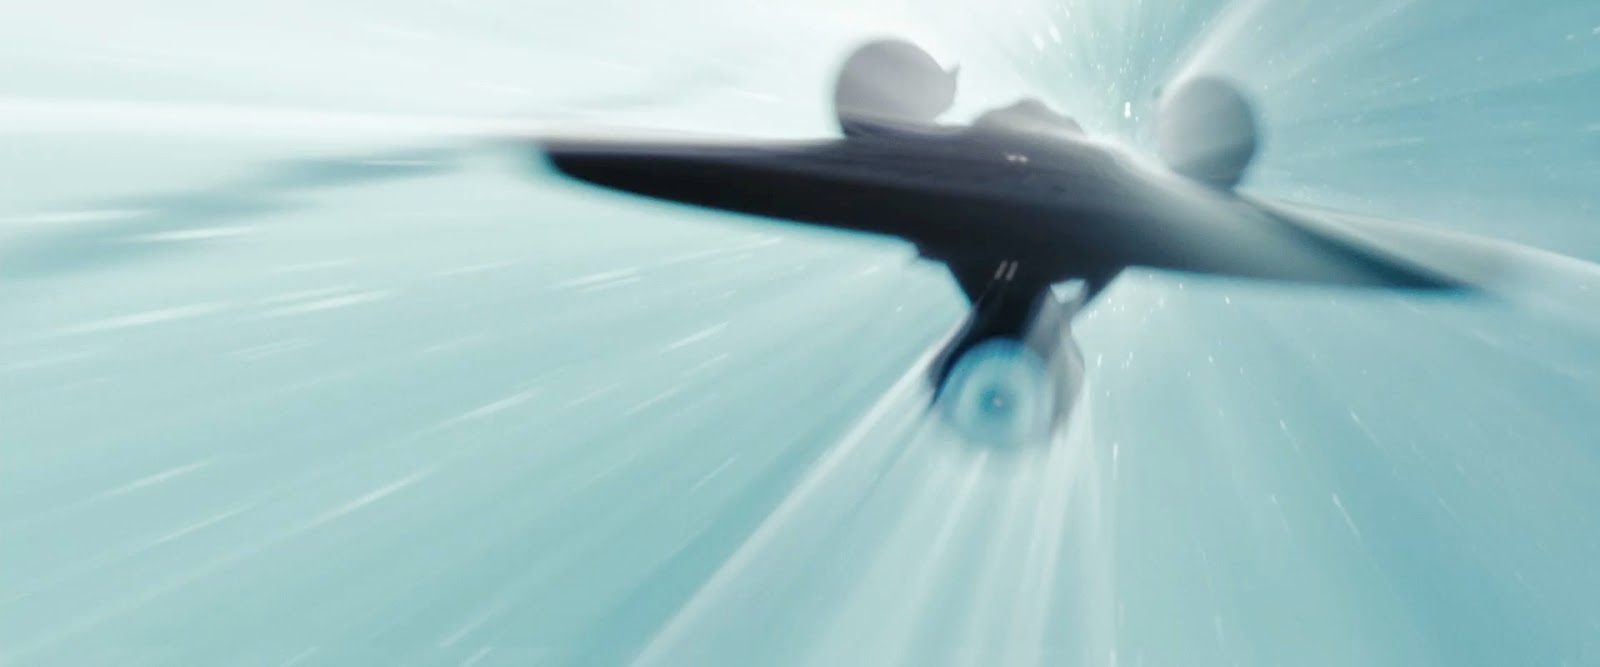 NASA Quietly Tests Engine That Uses No Fuel And Violates The Laws Of Physics  STAR_TREK_2009_SCREENSHOT_1